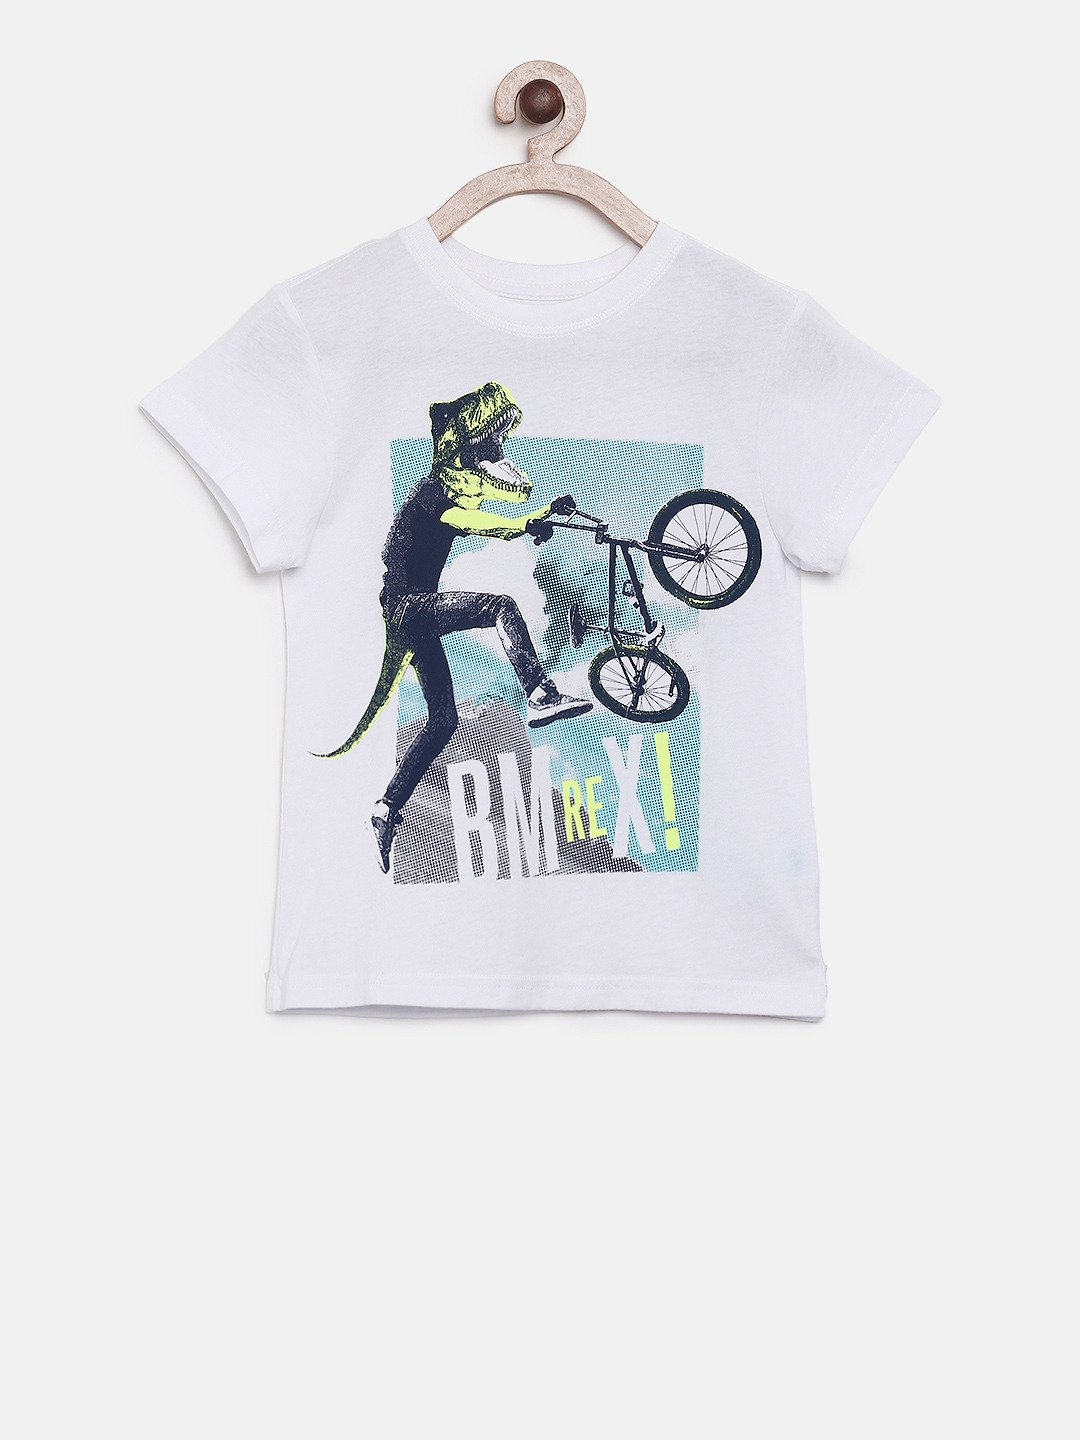 8d7002f8 Buy The Childrens Place Boys White Printed Round Neck T Shirt ...